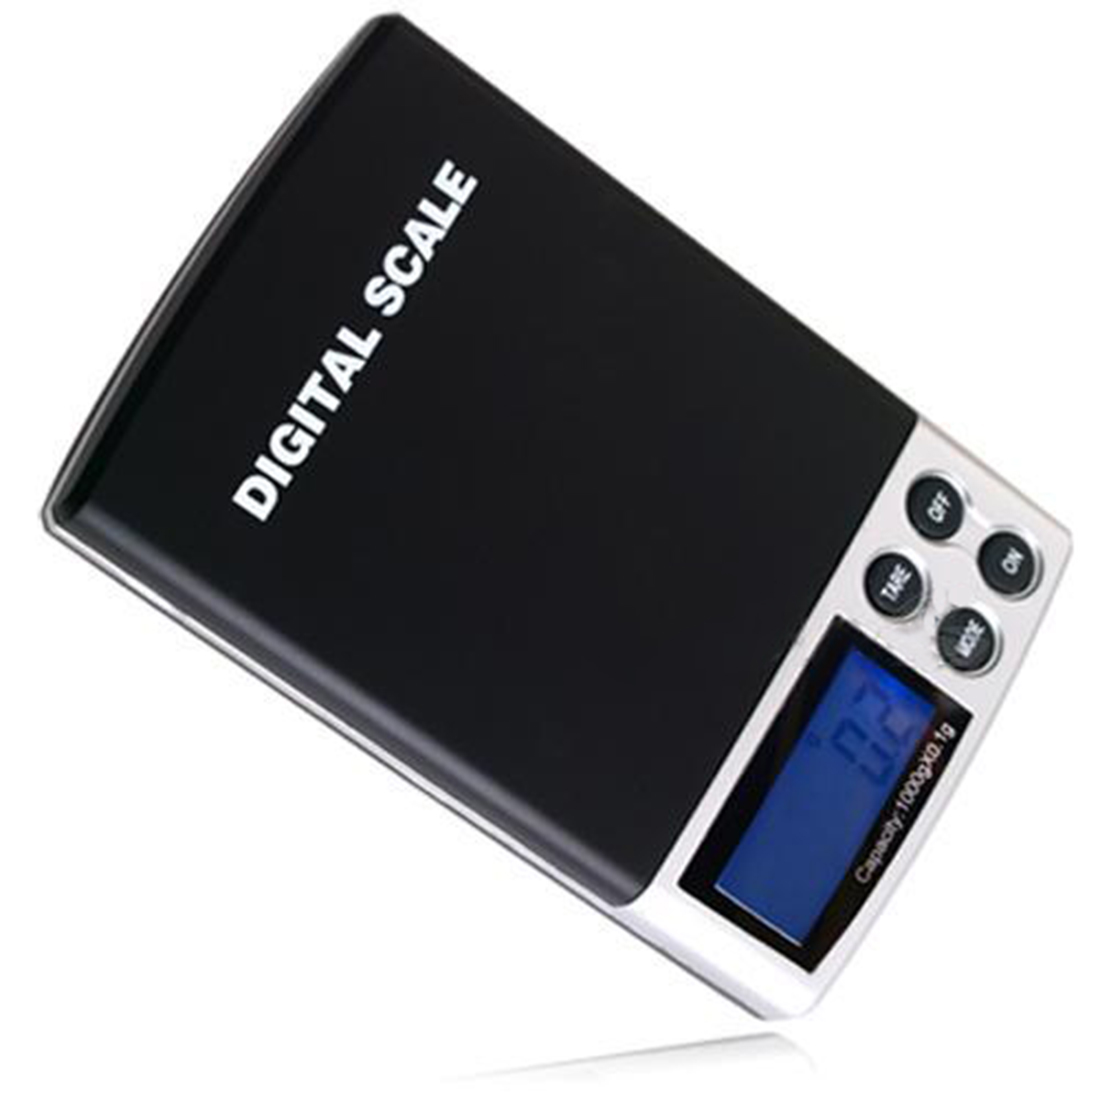 New 1000g x 0.1g LCD Display Mini Electronic Digital Jewelry Pocket Scale Balance Weight Weighing Scale mini smart weighting scale digital household body scale lcd display electronic weight balance health care new